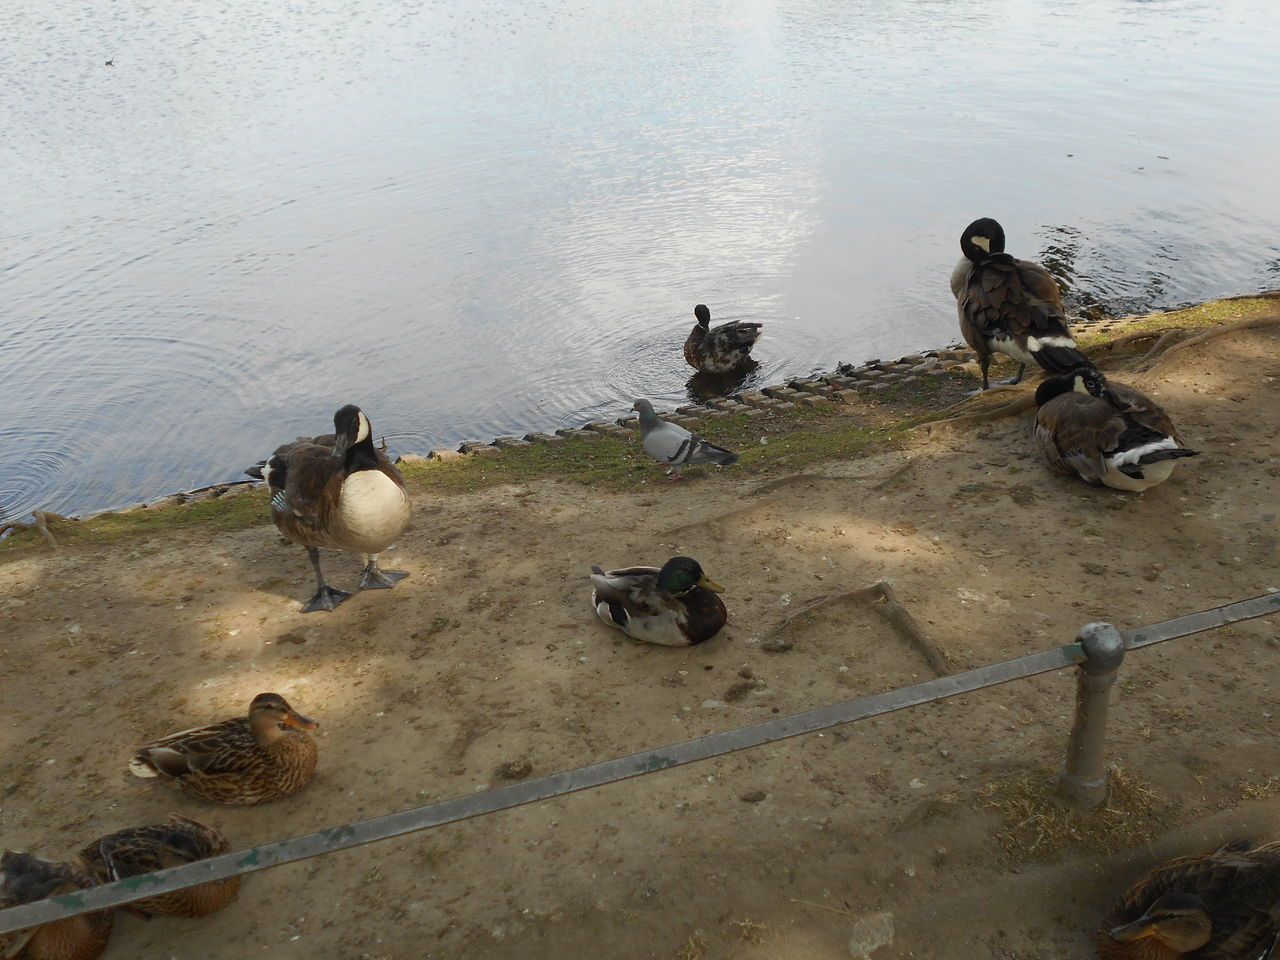 animal themes, high angle view, animals in the wild, bird, animal wildlife, large group of animals, lake, no people, young bird, water, day, young animal, nature, outdoors, goose, togetherness